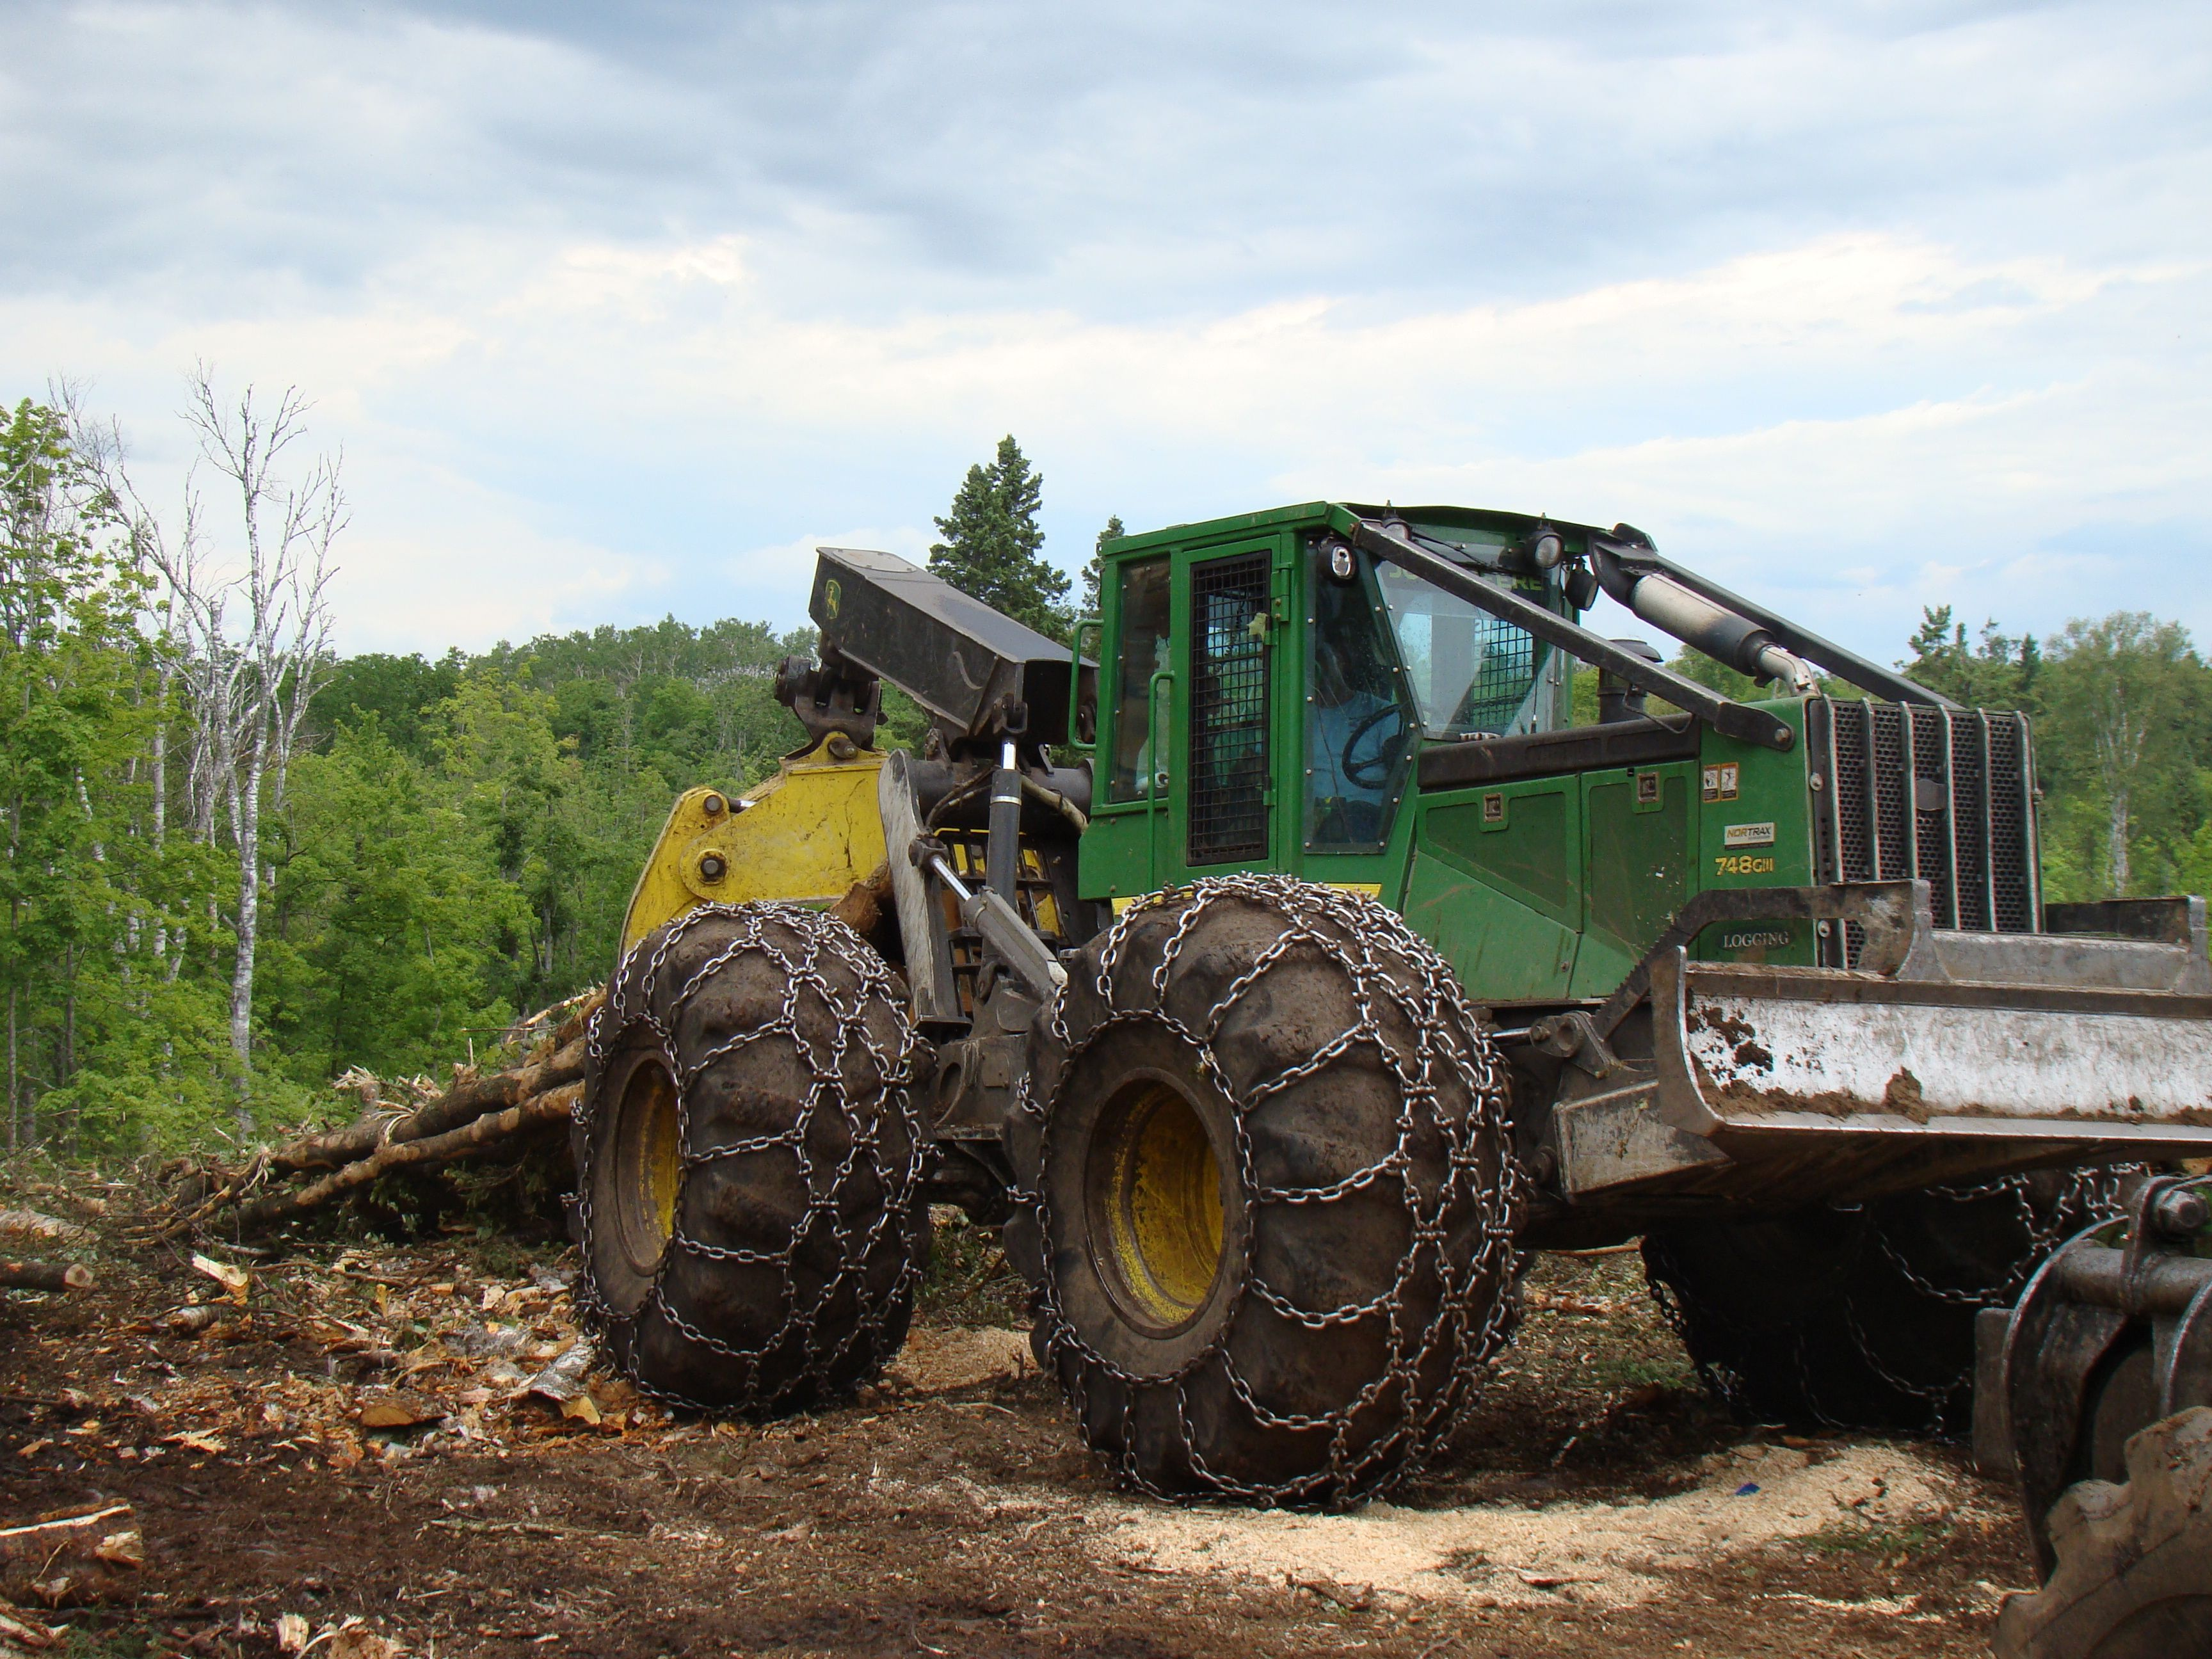 Tree farmer skidder for sale in ny - Wheelie Logging Pinterest Logs Heavy Equipment And Logging Equipment